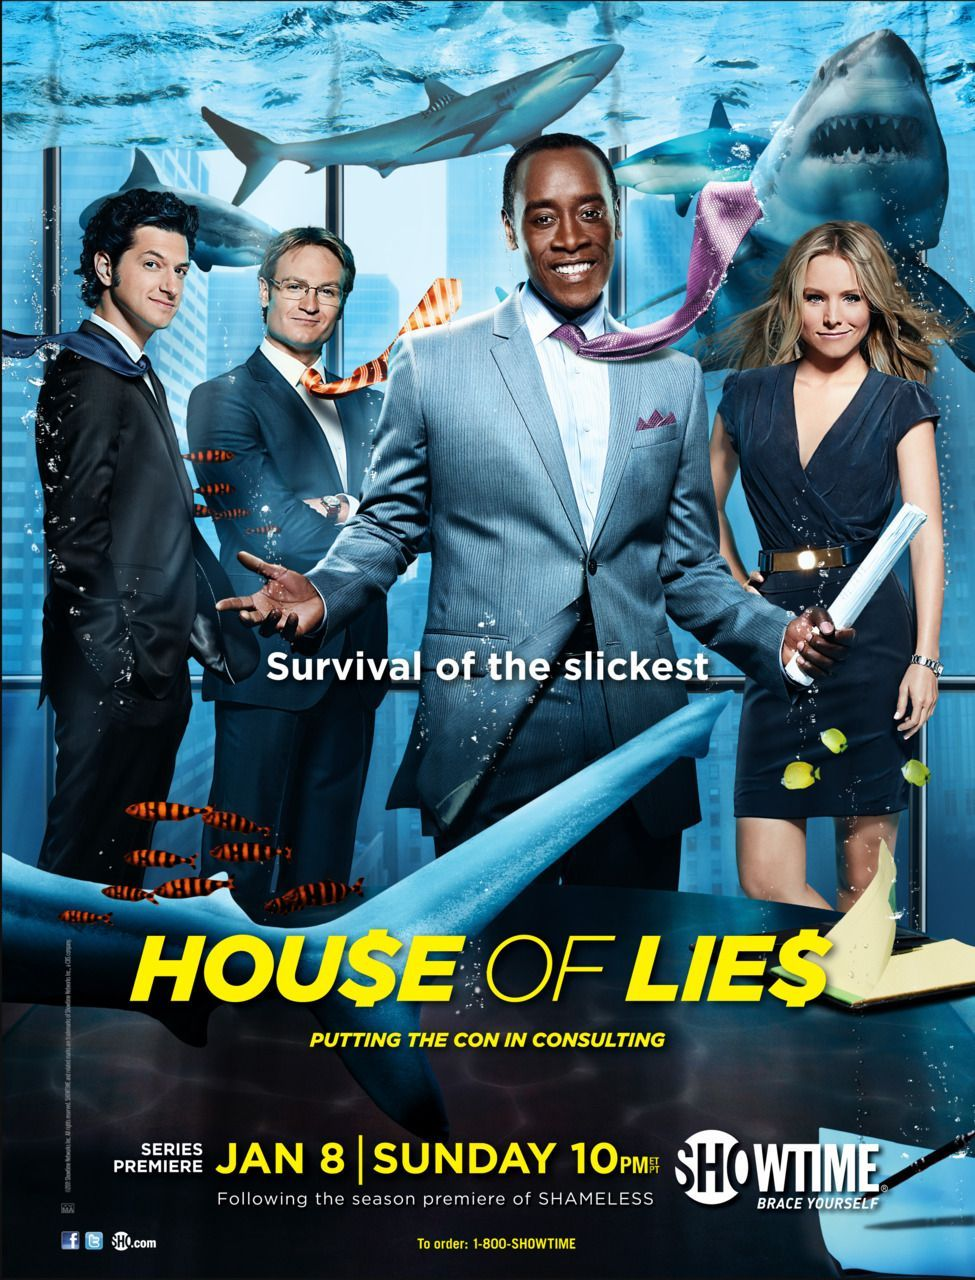 house of lies tv show images promo hd wallpaper and background photos 26486020. Black Bedroom Furniture Sets. Home Design Ideas